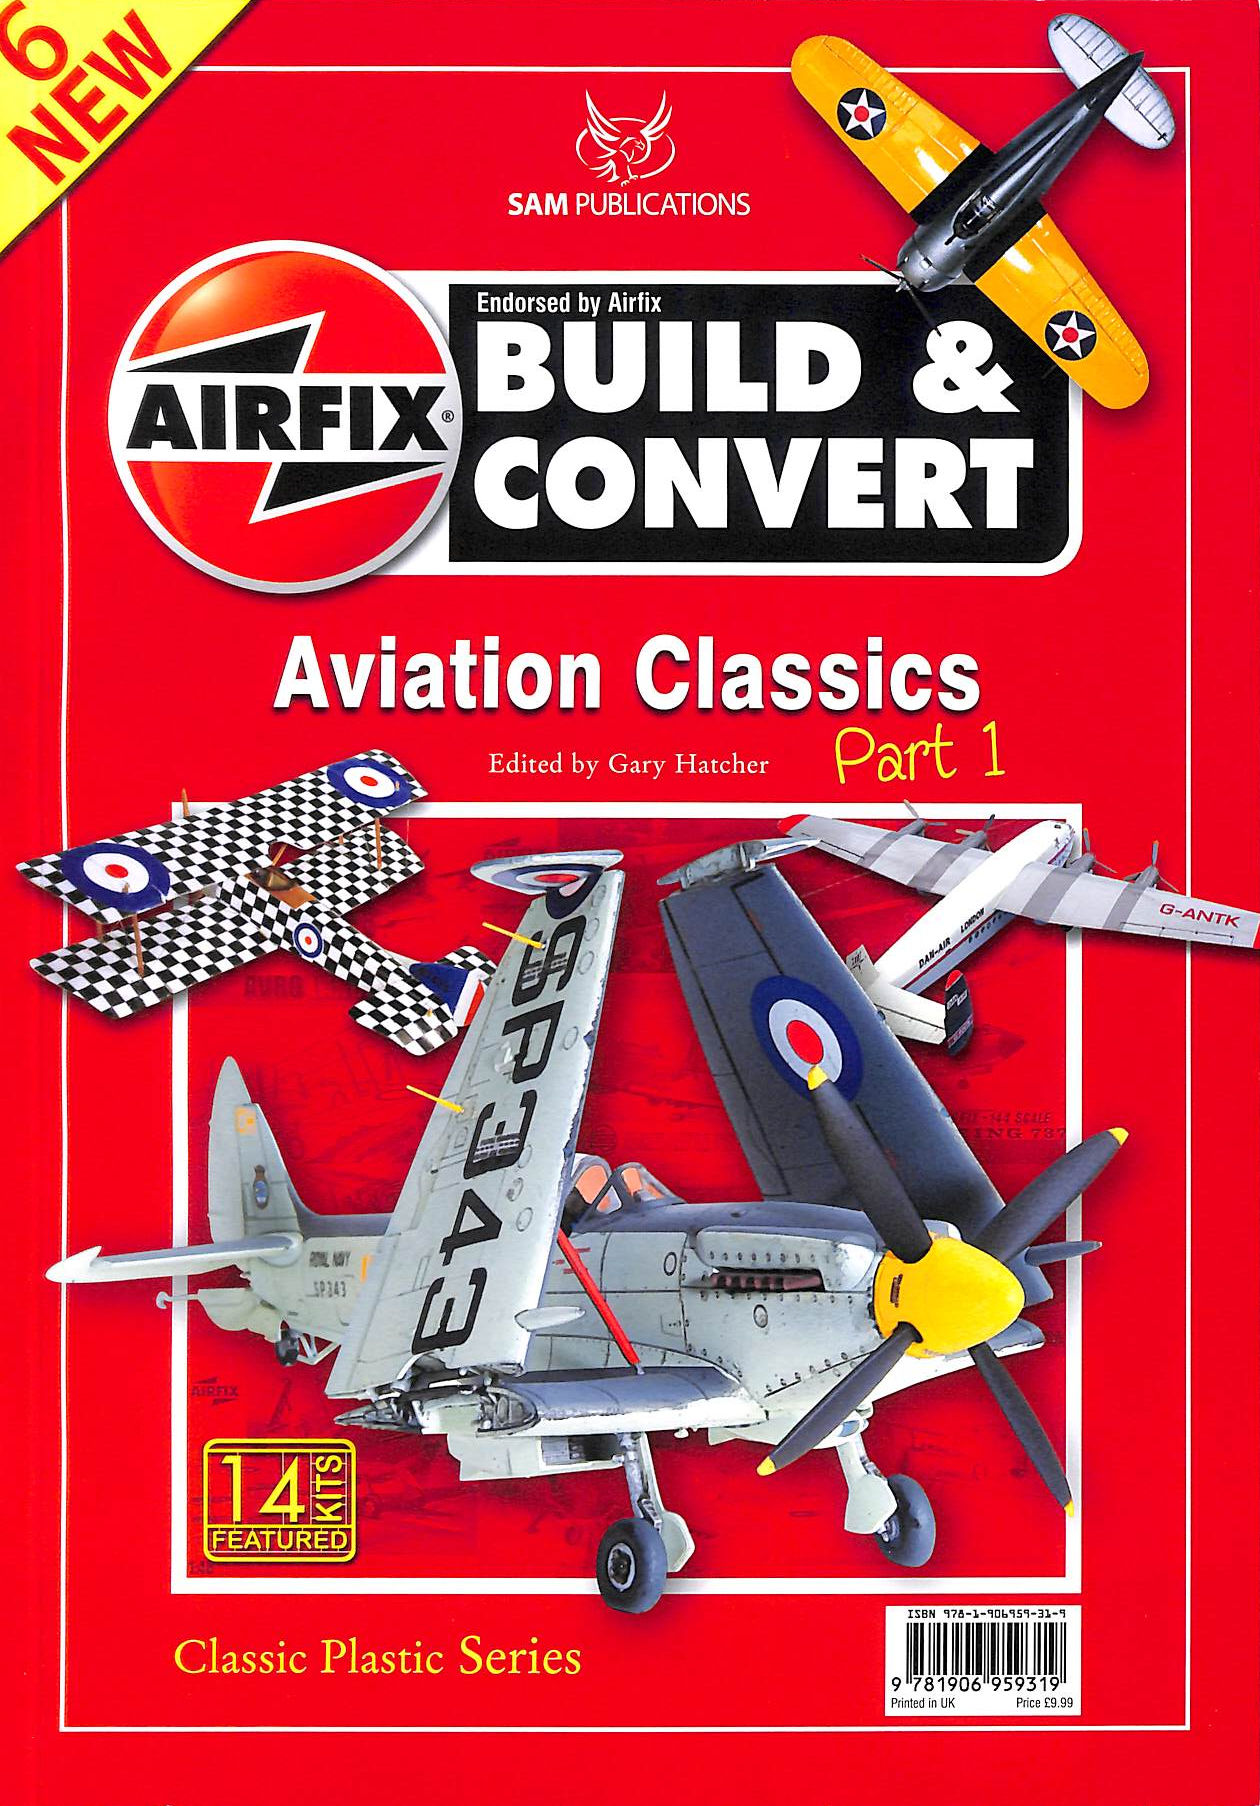 Image for Airfix Build And Convert Aviation Classics Part 1